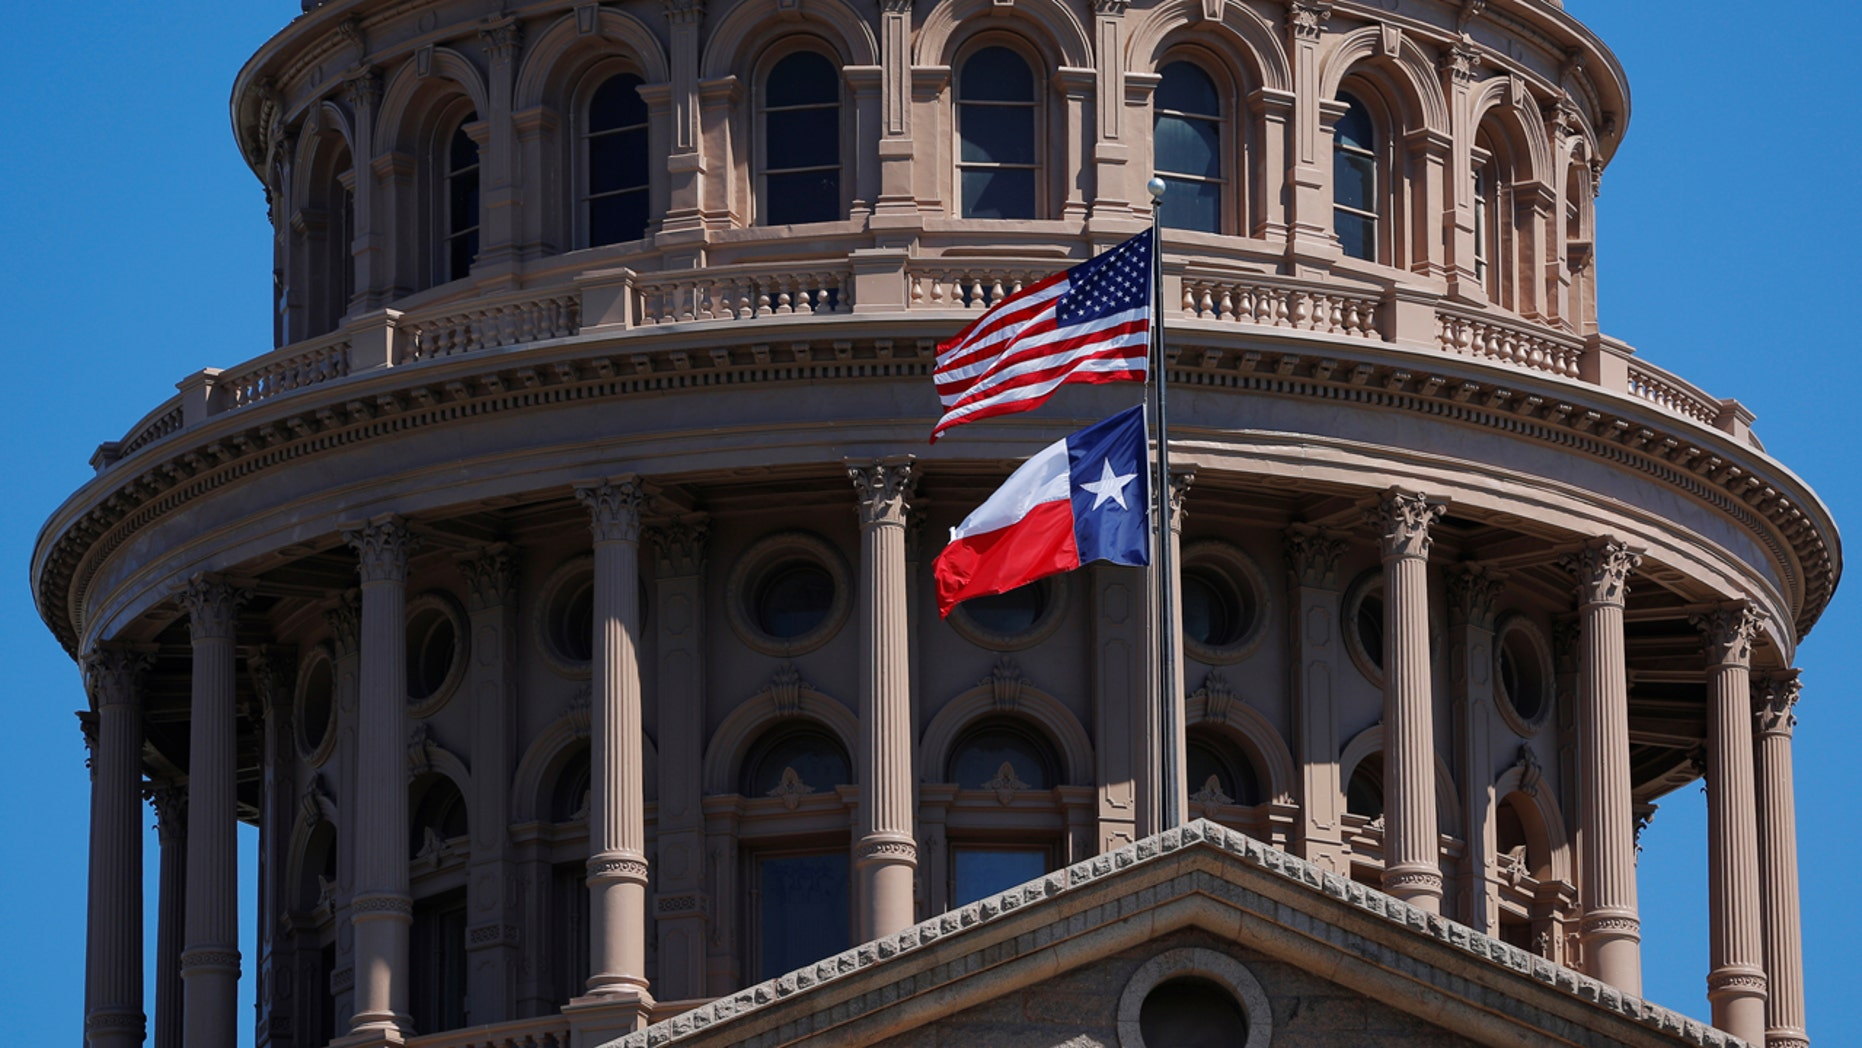 The American flag and the Texas state fly over the Texas State Capitol in Austin, March 14, 2017.